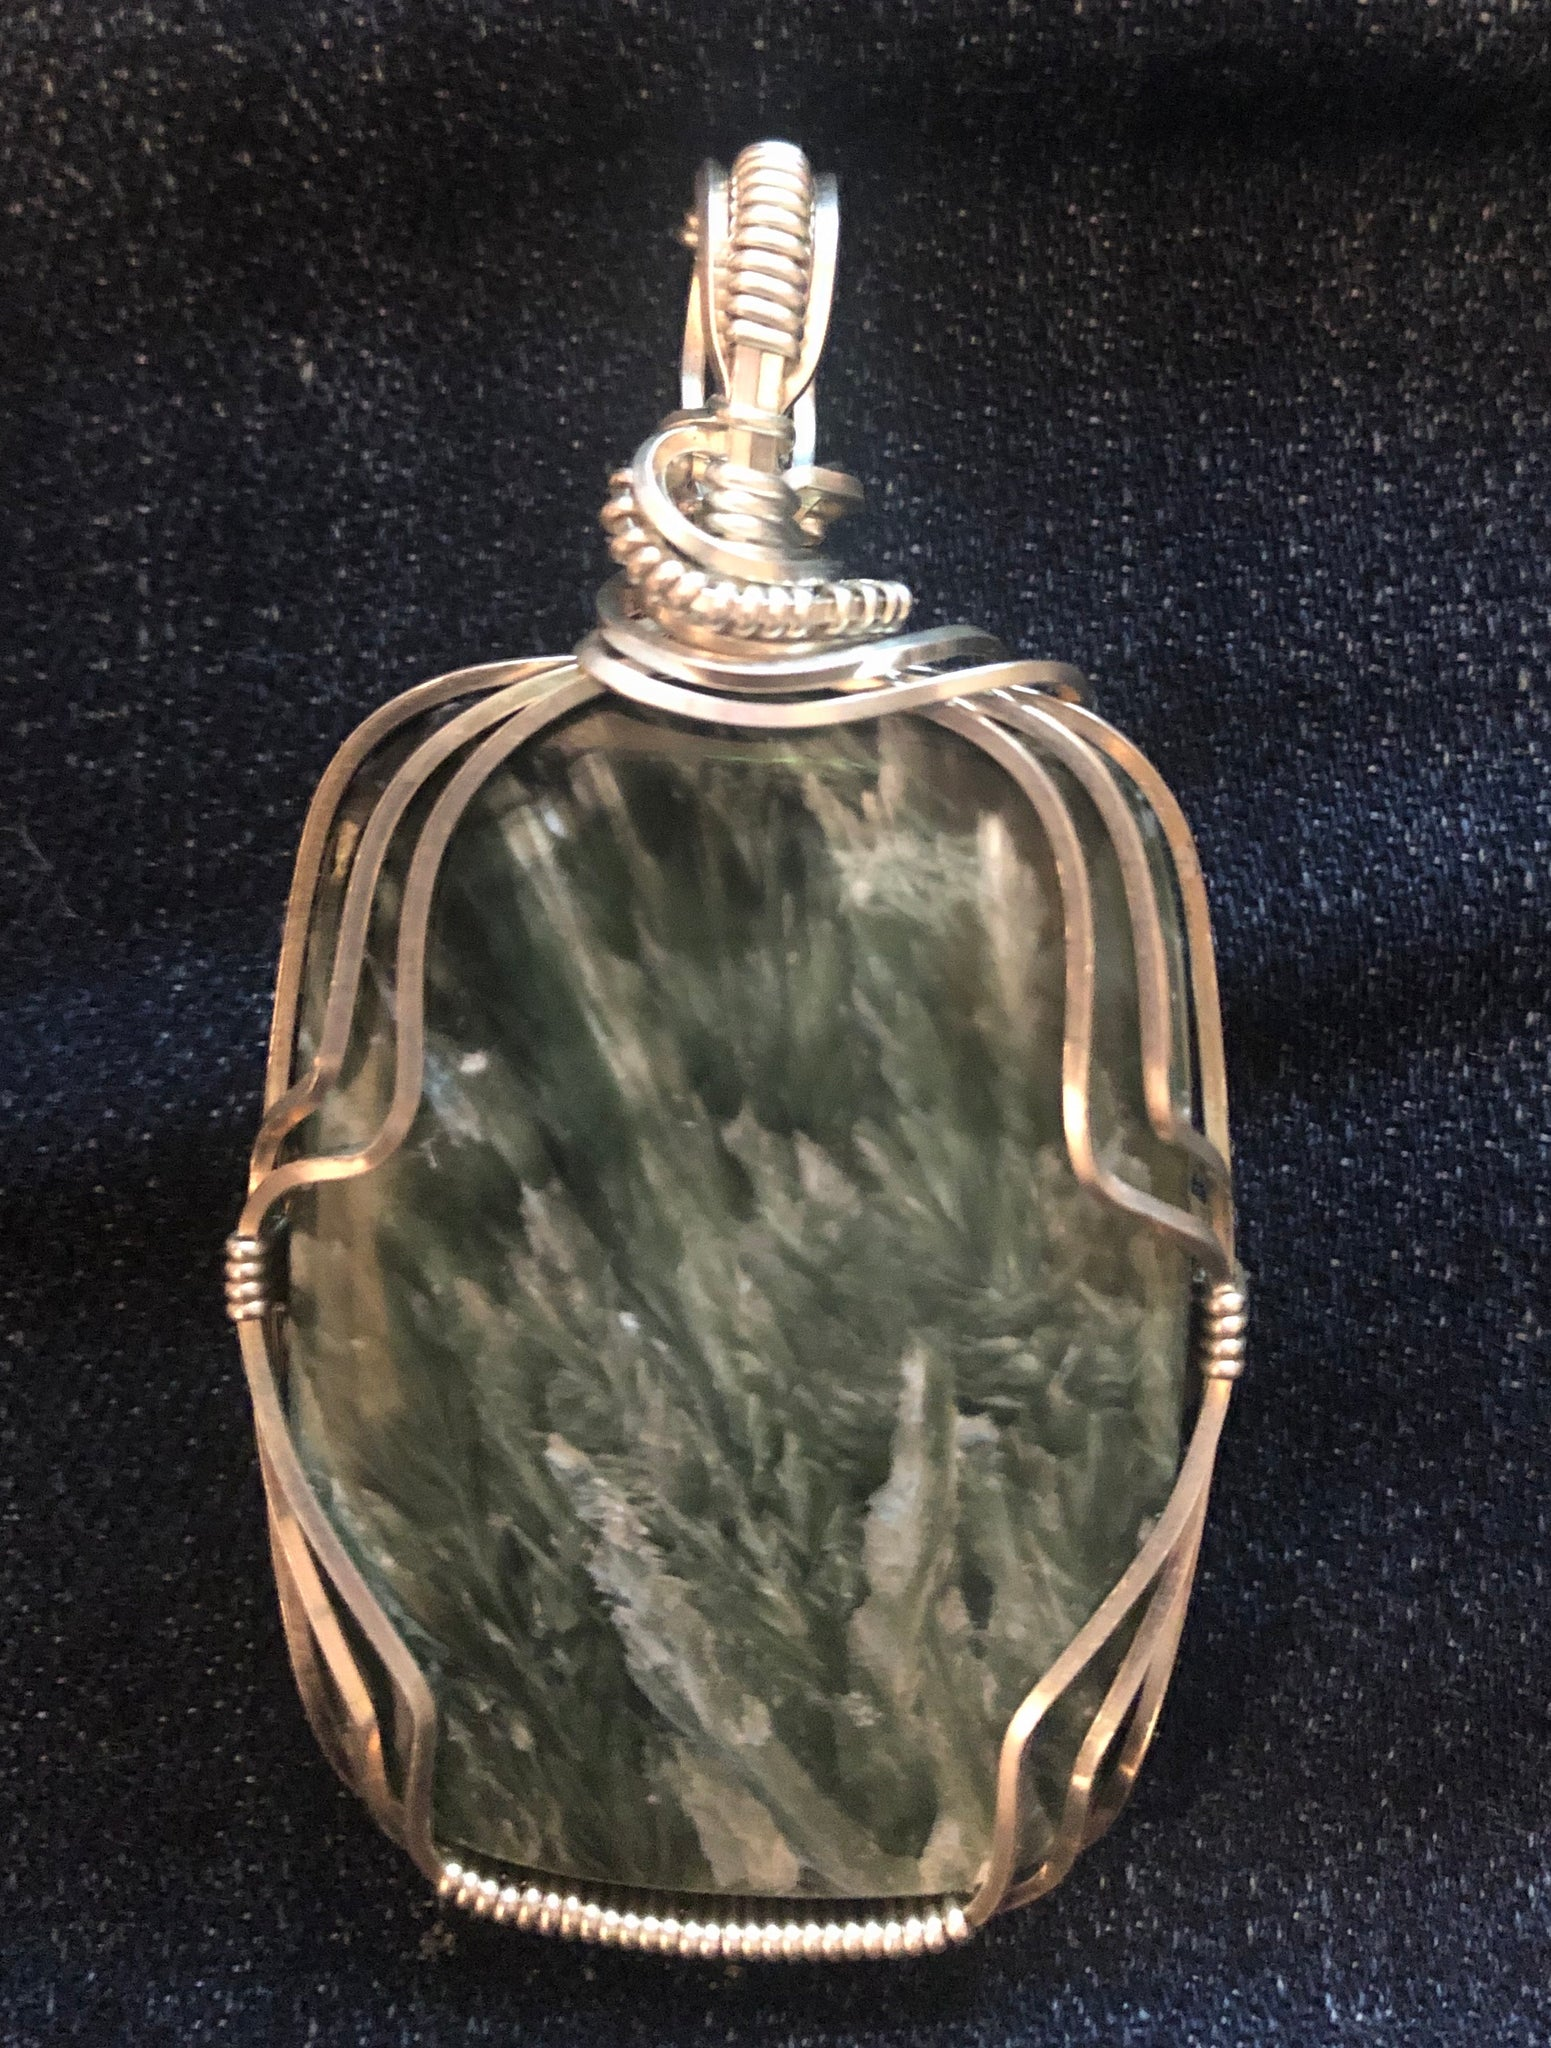 Fashion Lion- Large Serephine Stone Pendant wrapped in Sterling Silver Setting